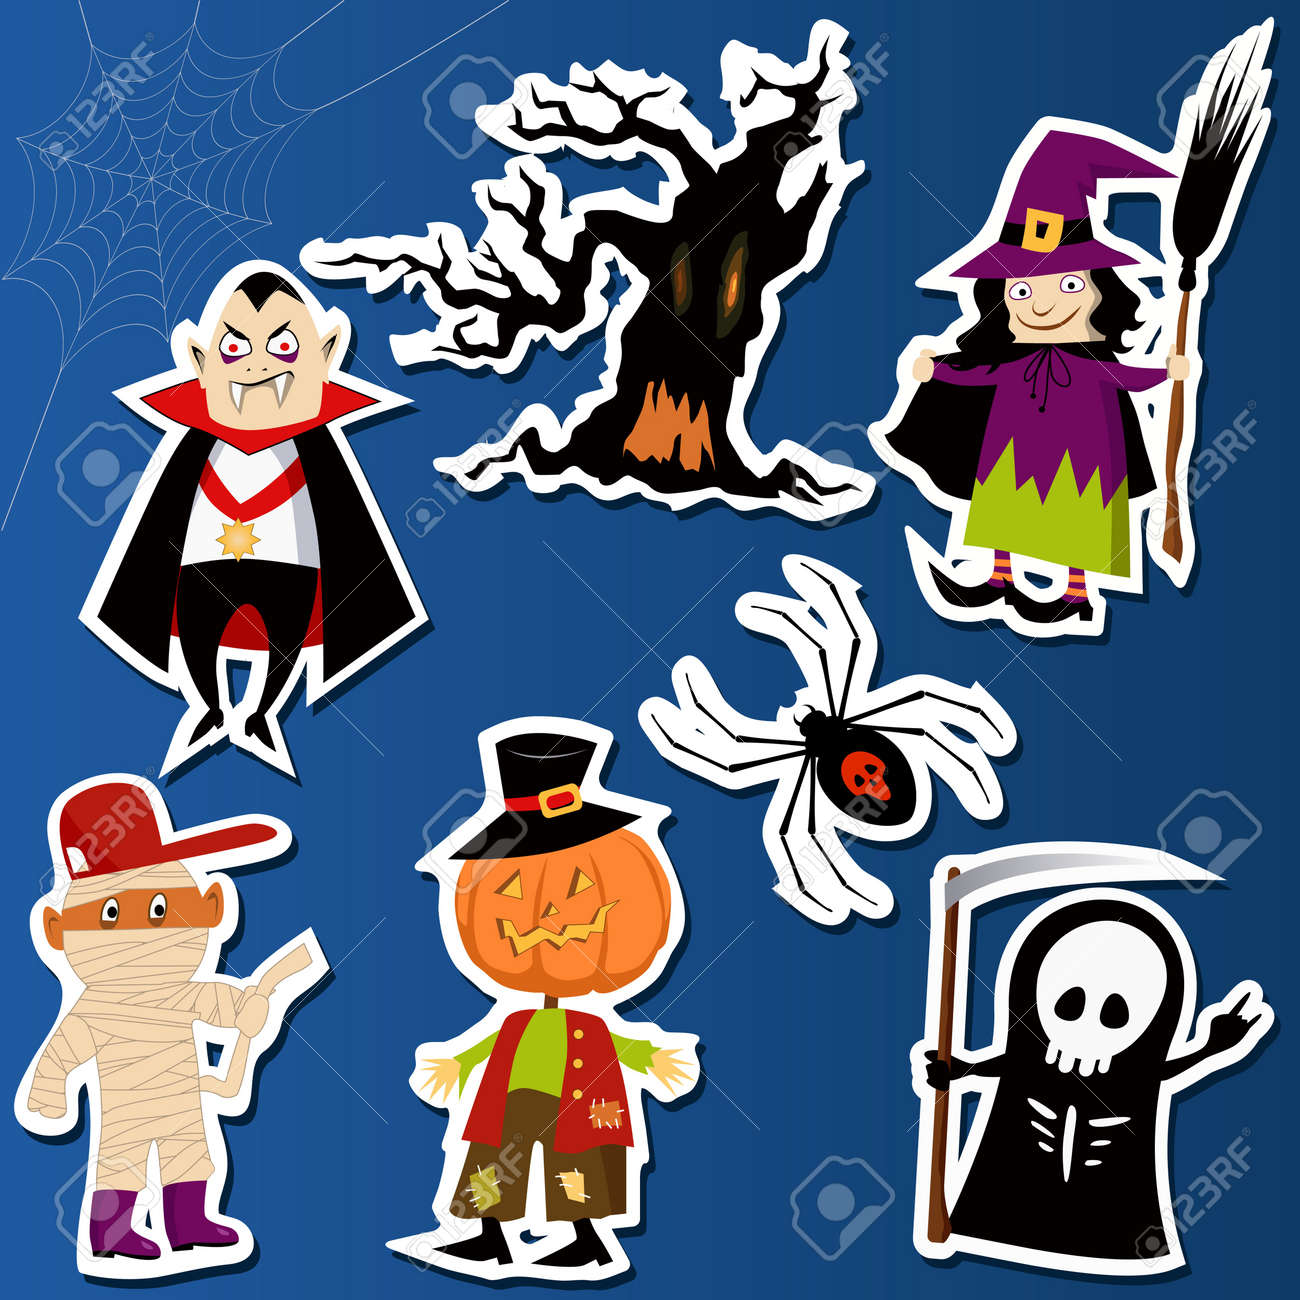 Set of cute Halloween character stickers with Witch, Mummy, Dracula, Grim Reaper and